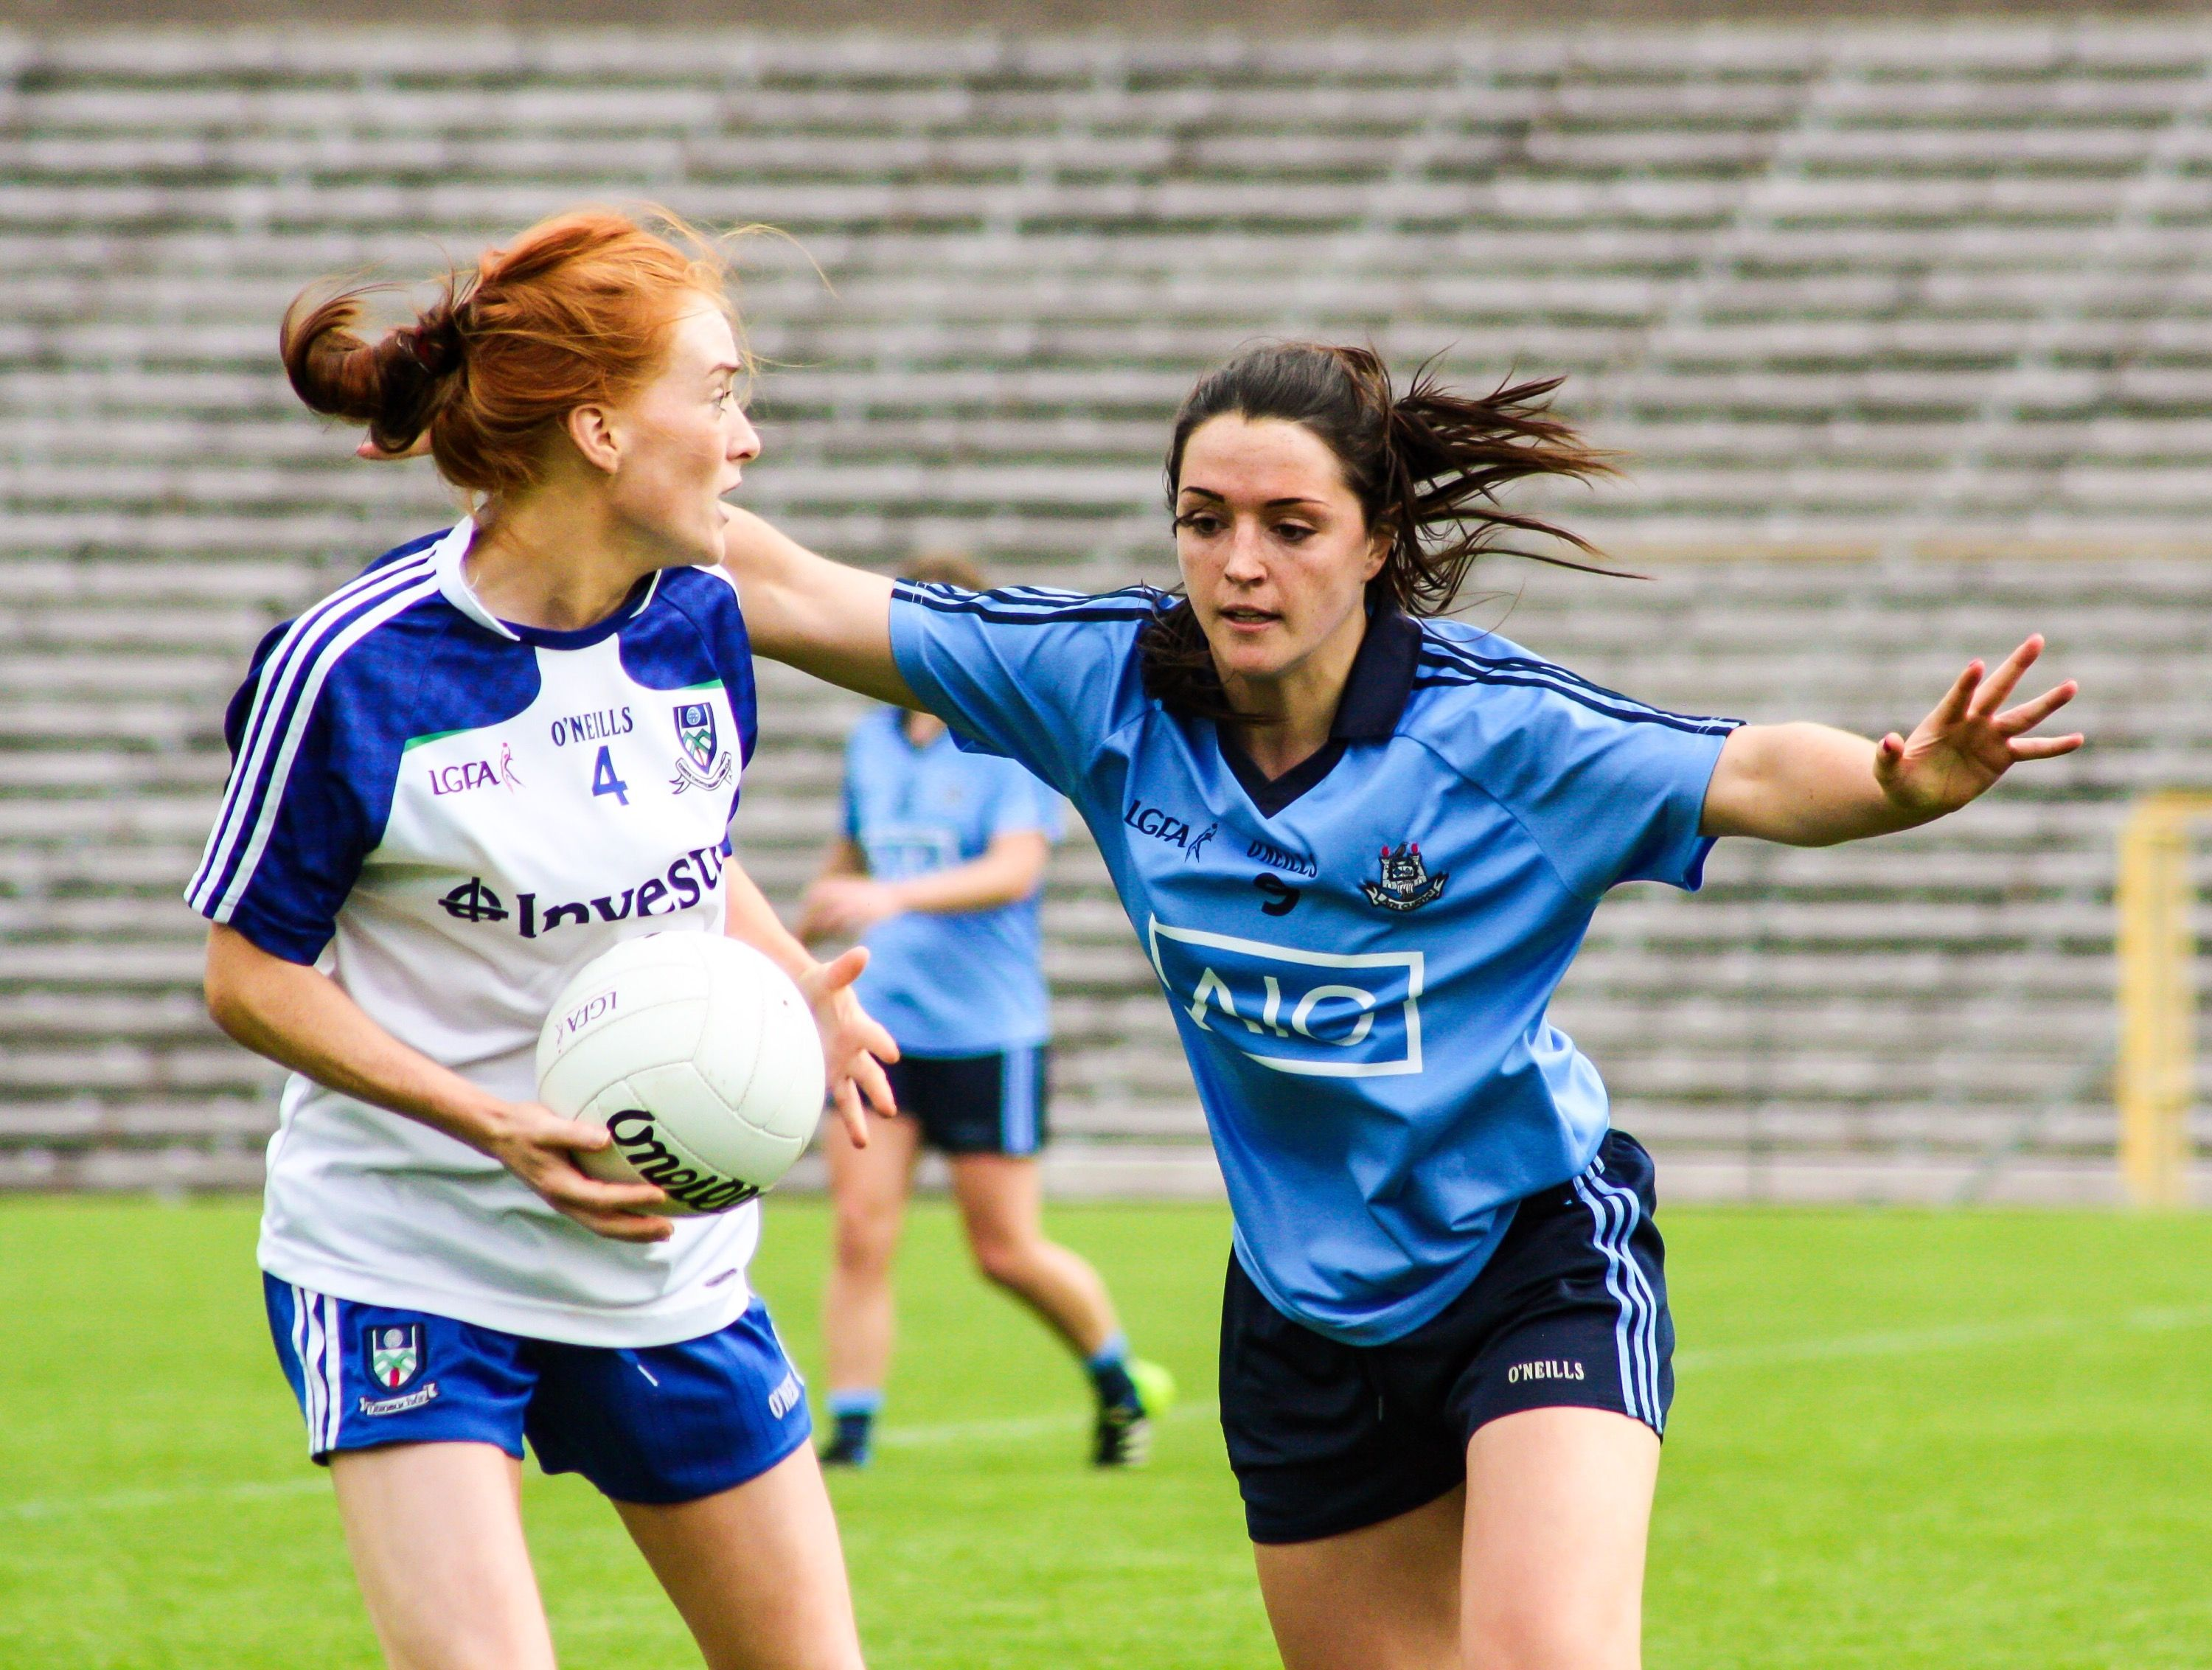 DUBLIN THROUGH TO THE ALL IRELAND SEMIFINAL AFTER